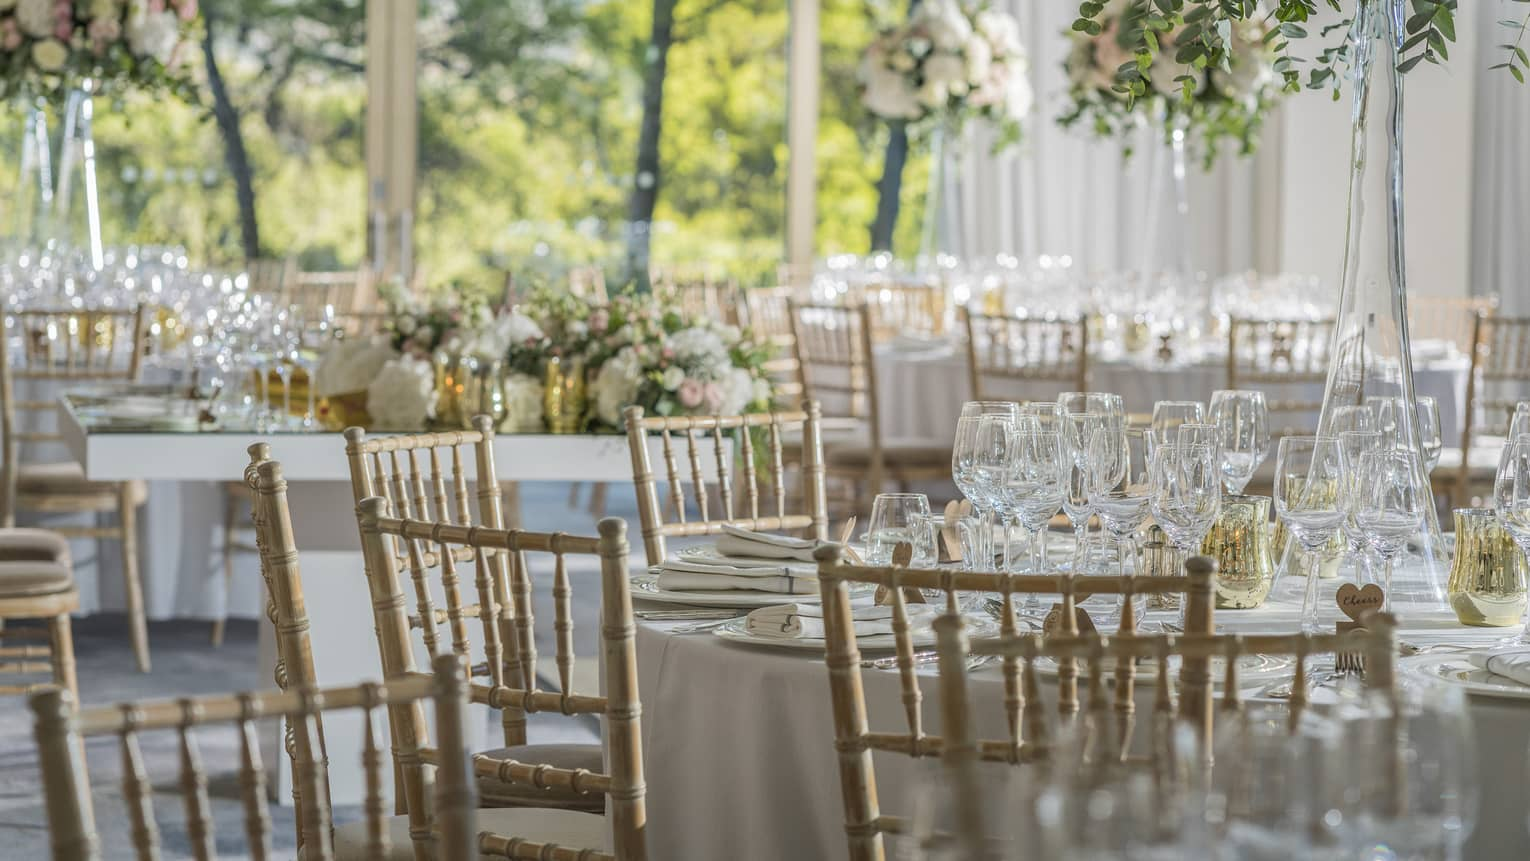 Round table with wooden chairs, place settings, glasses, floral display, in sunny room overlooking trees